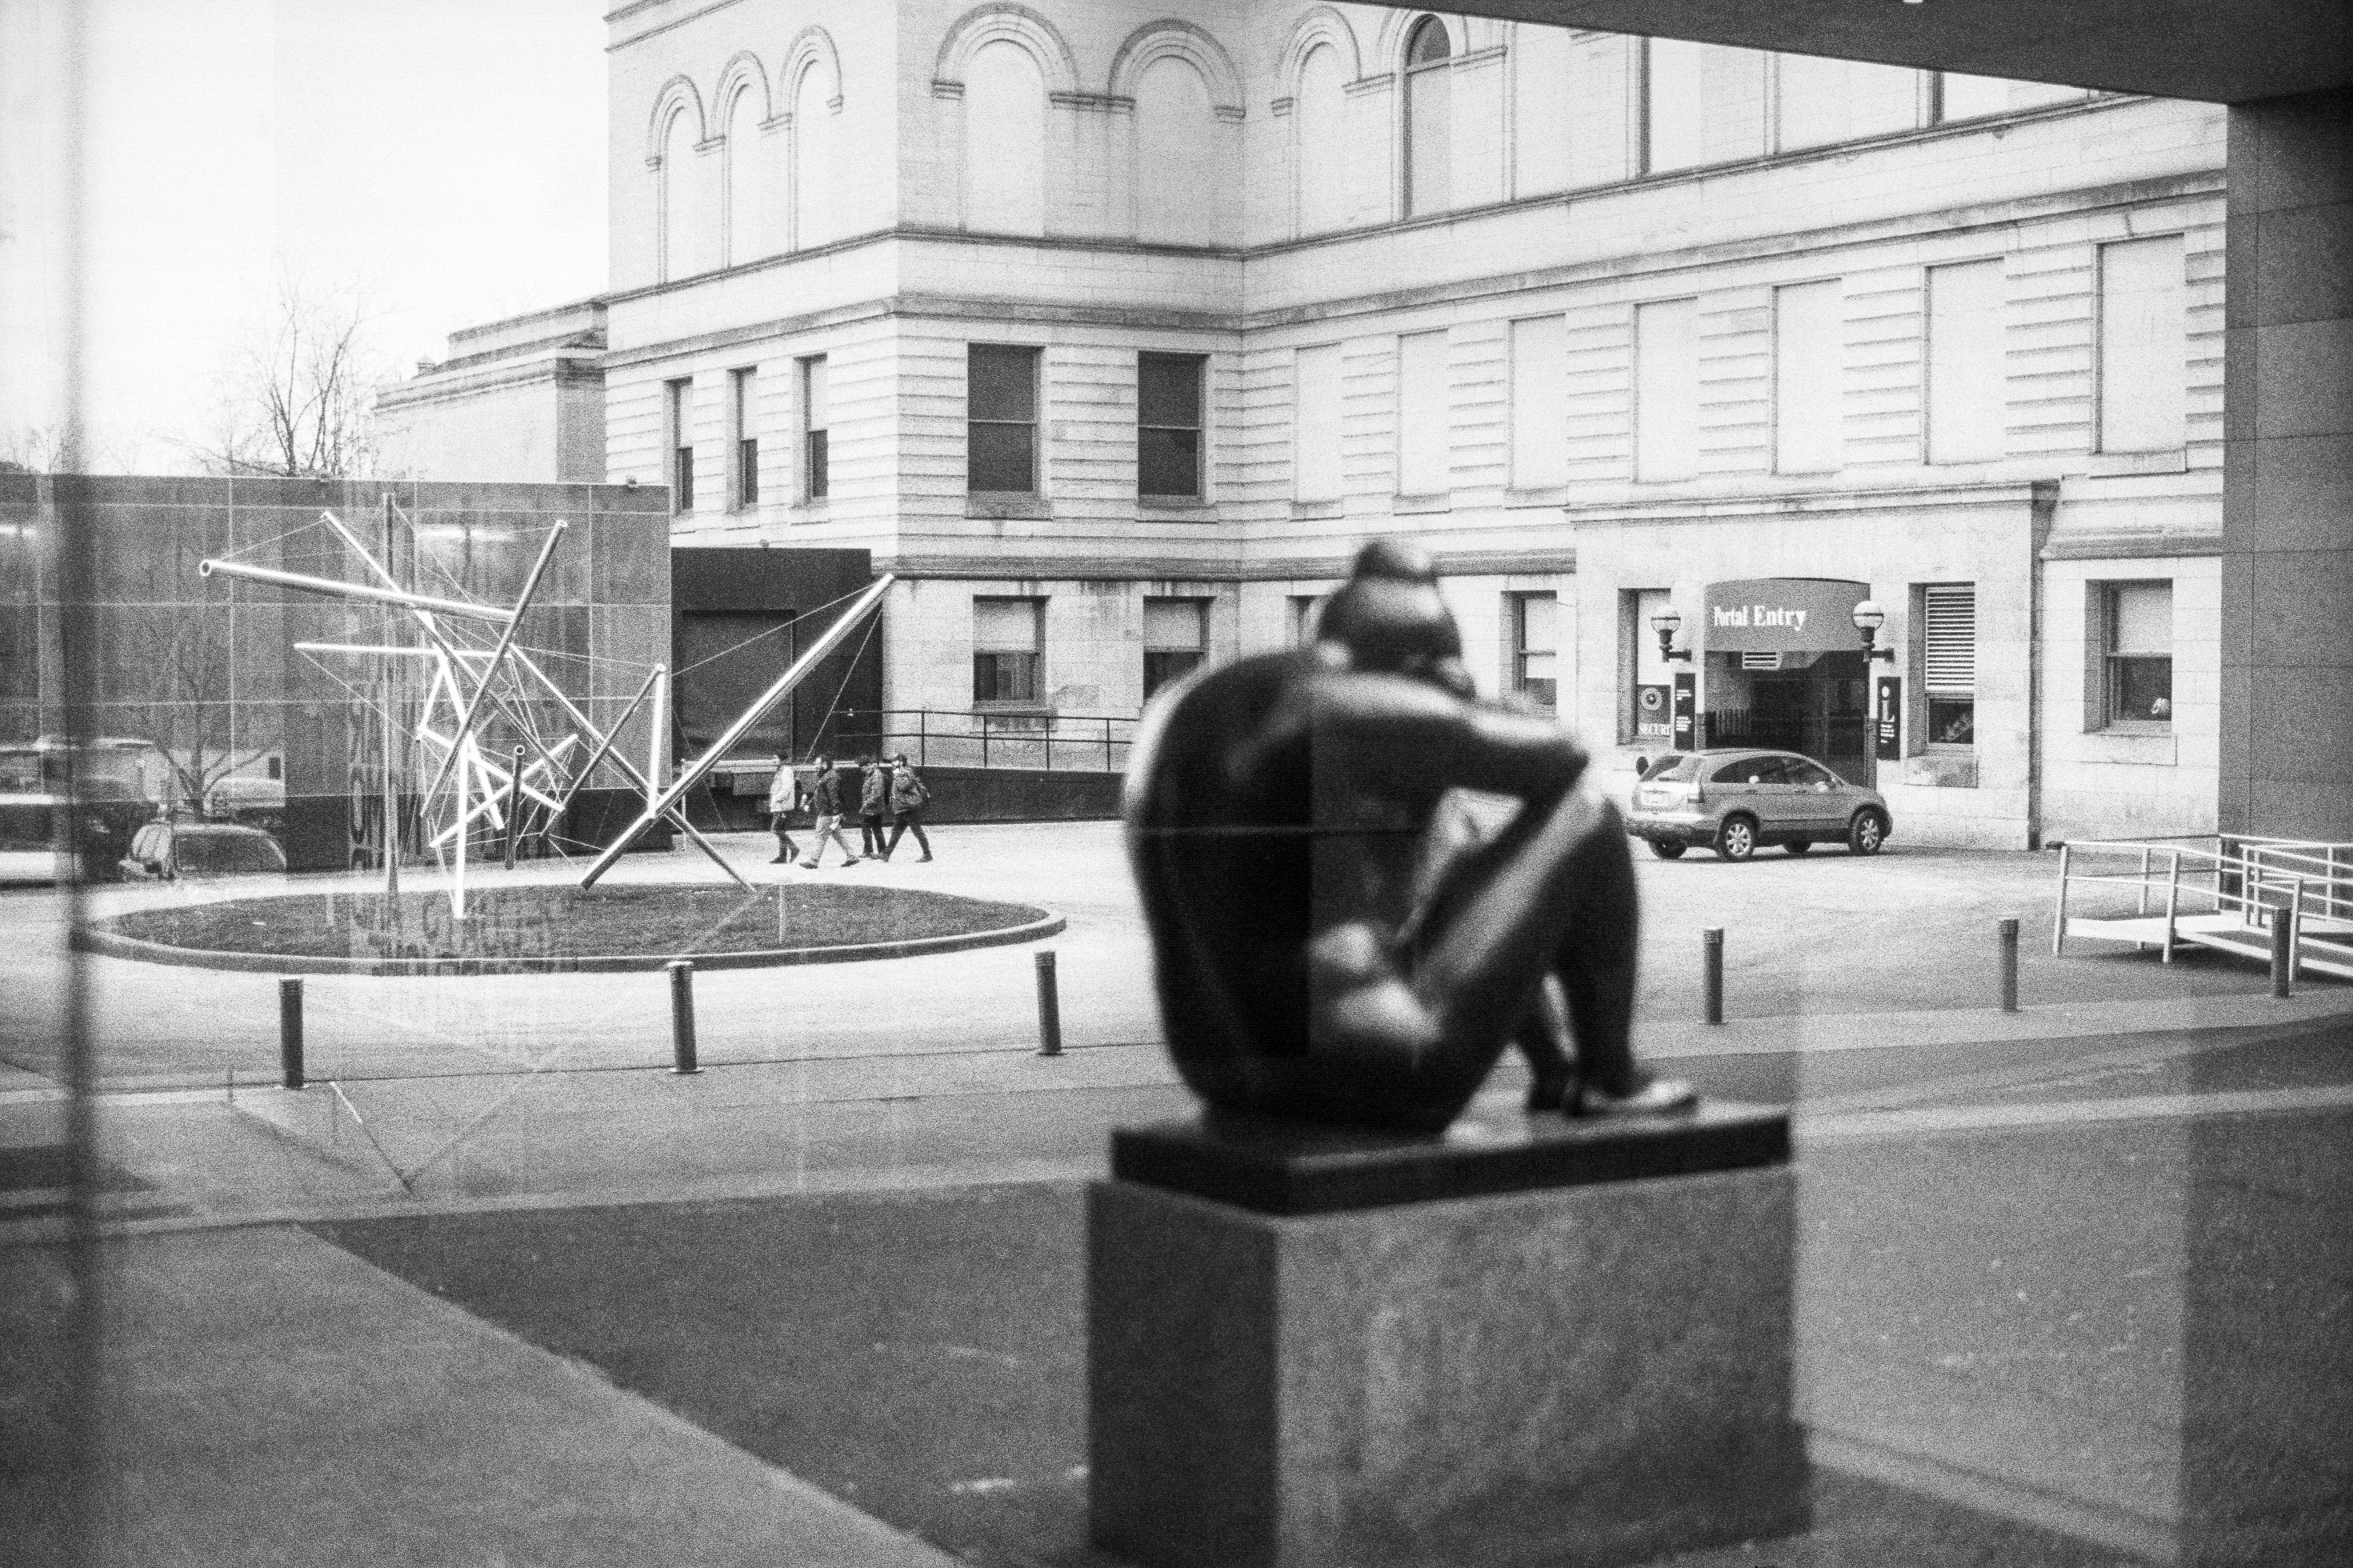 A sculpture of a woman sitting head-down in the fetal position sits in a sculpture garden. Behind it, a group of four people walk across a parking lot, next to a tangled artwork of pipe and cable.